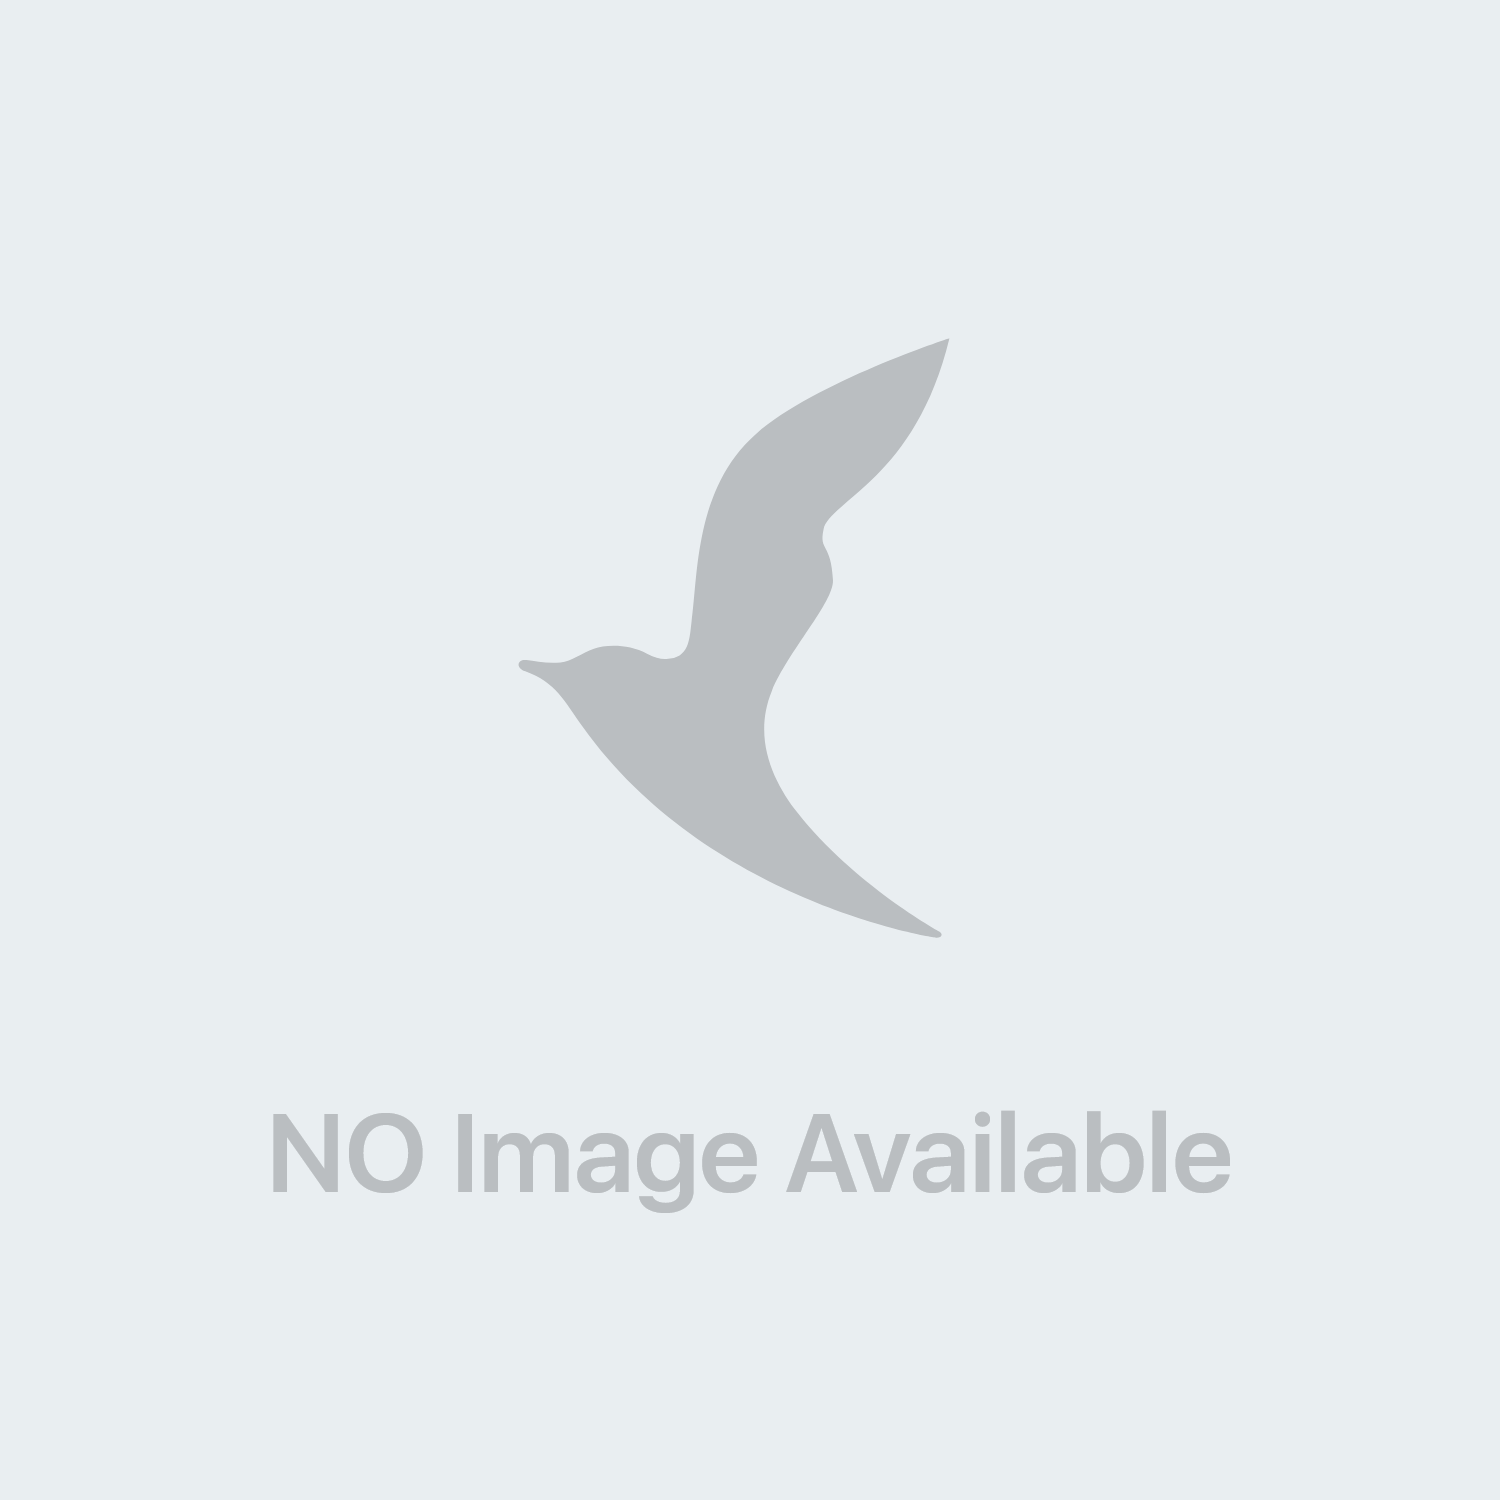 Decorenone 50 14 Compresse 50 mg